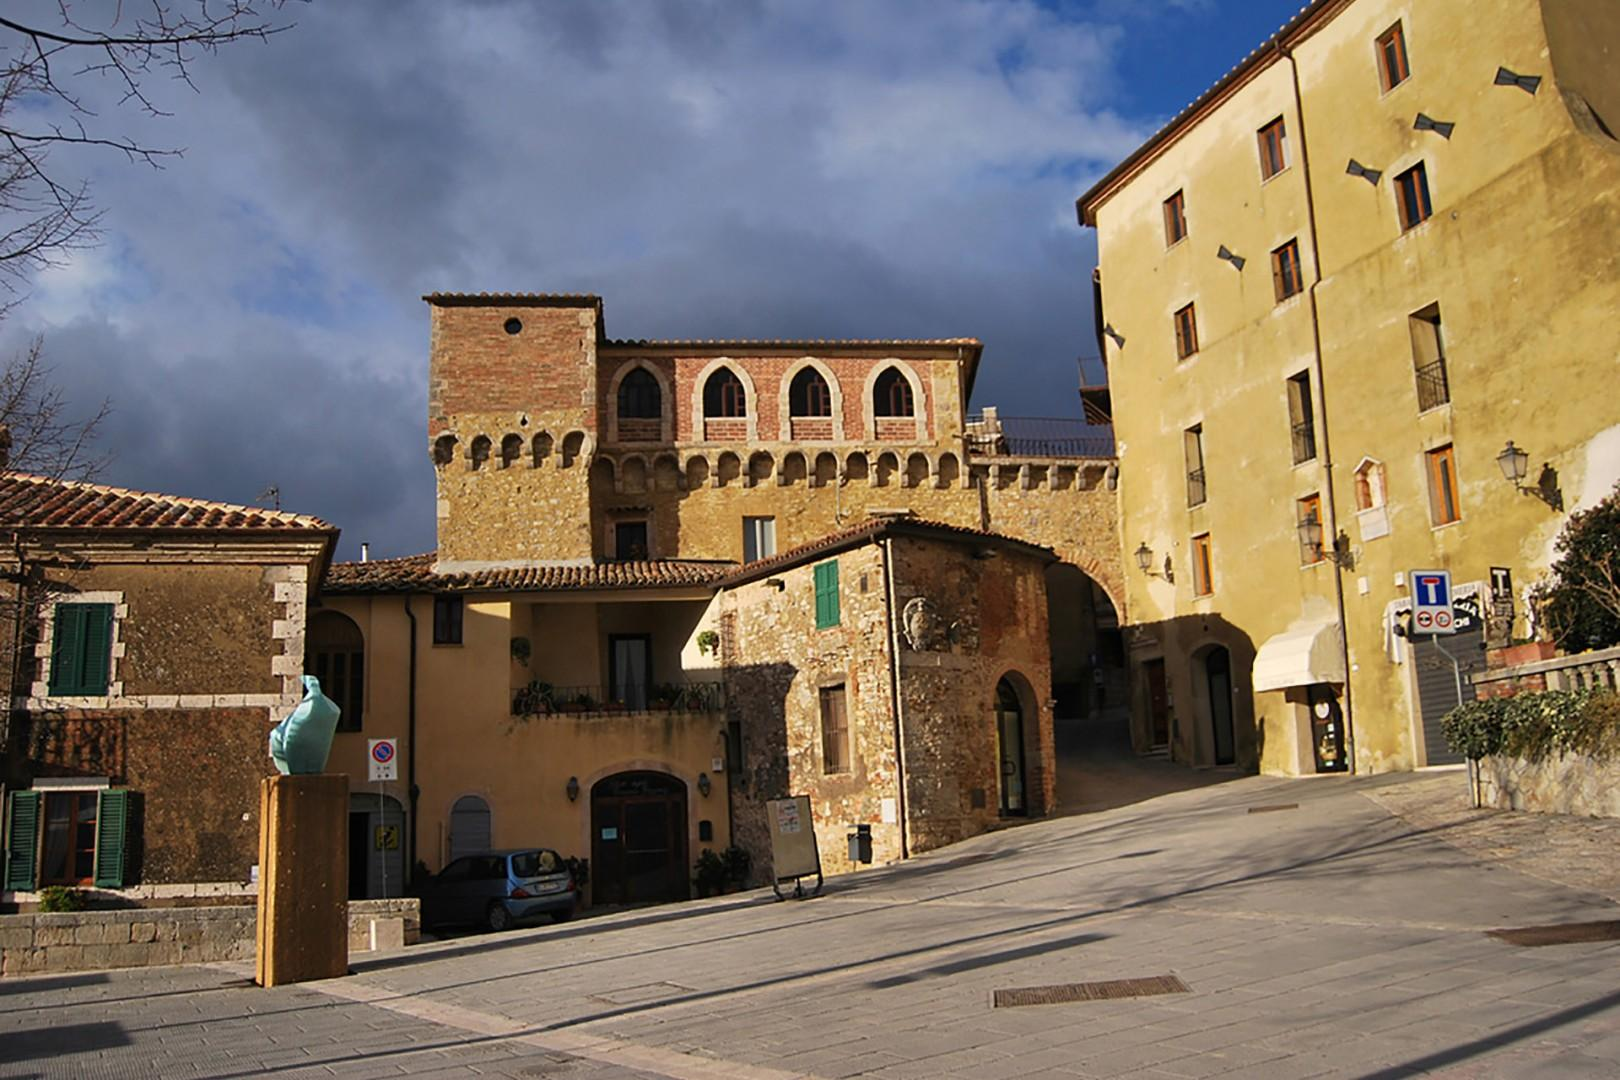 The main piazza of San Casciano reflects the slope of the hill on which it stands.